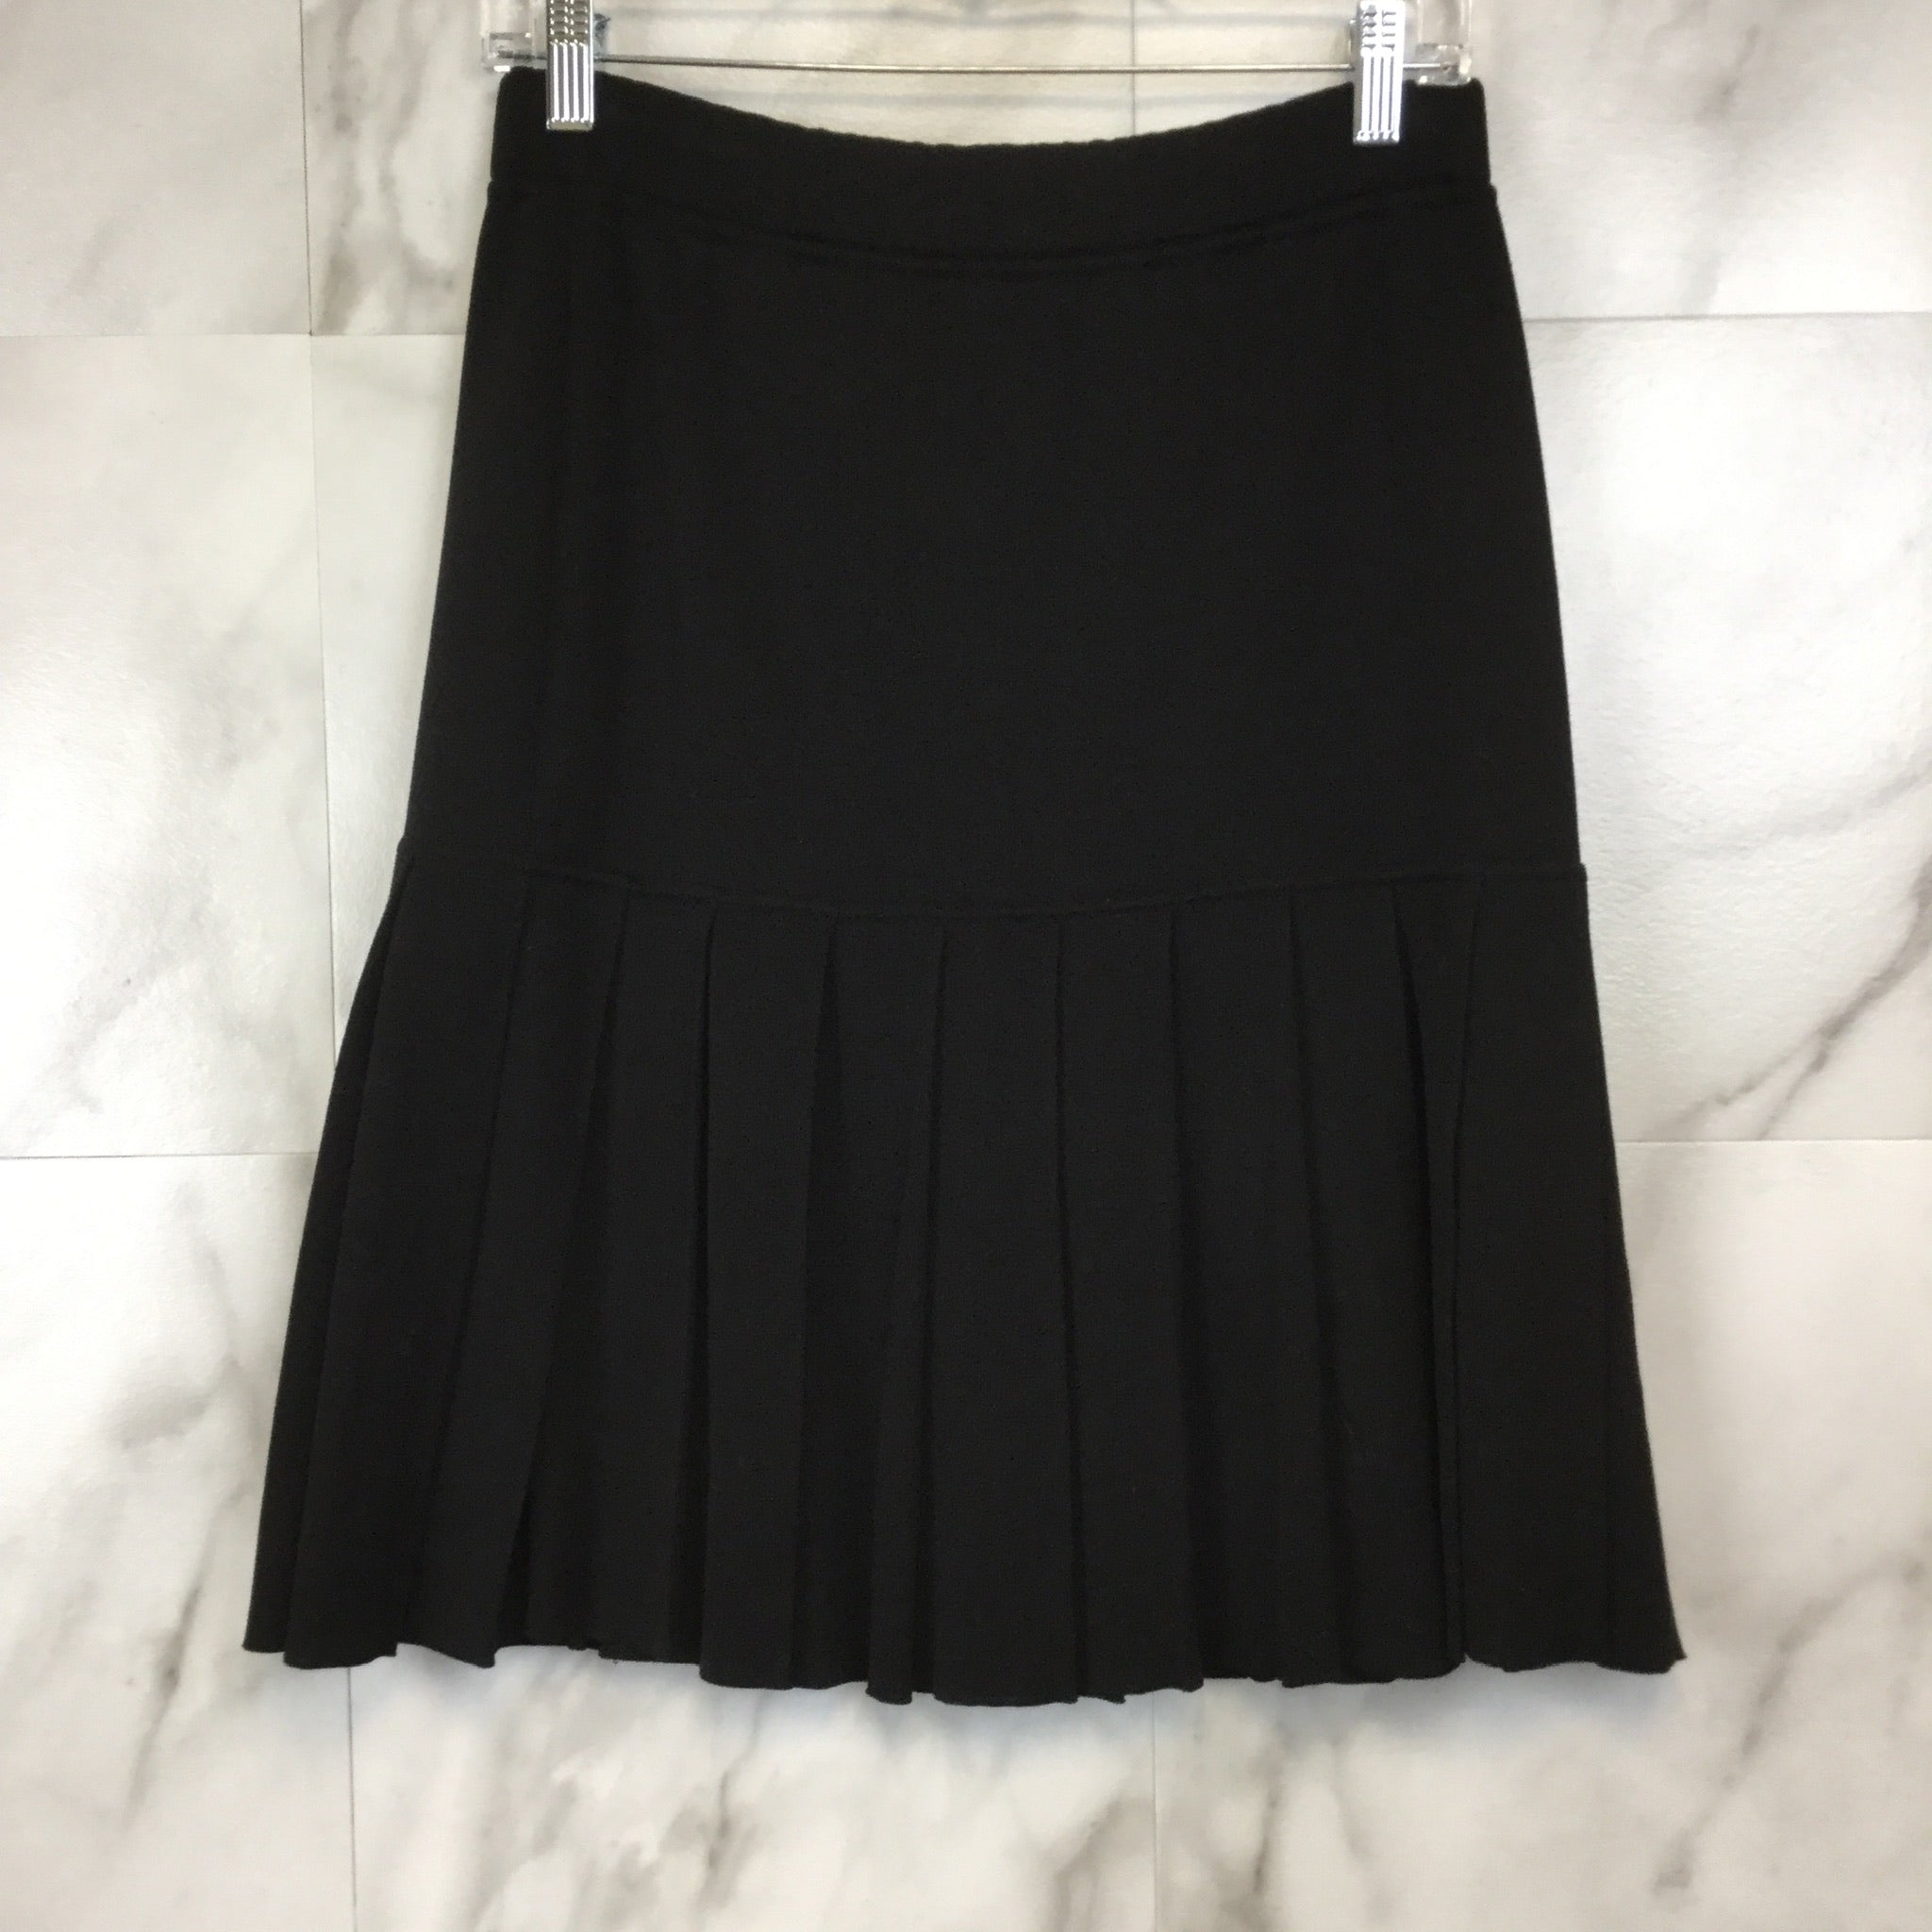 Vintage Chanel Boutique Wool Knit Pleated Skirt - size 6